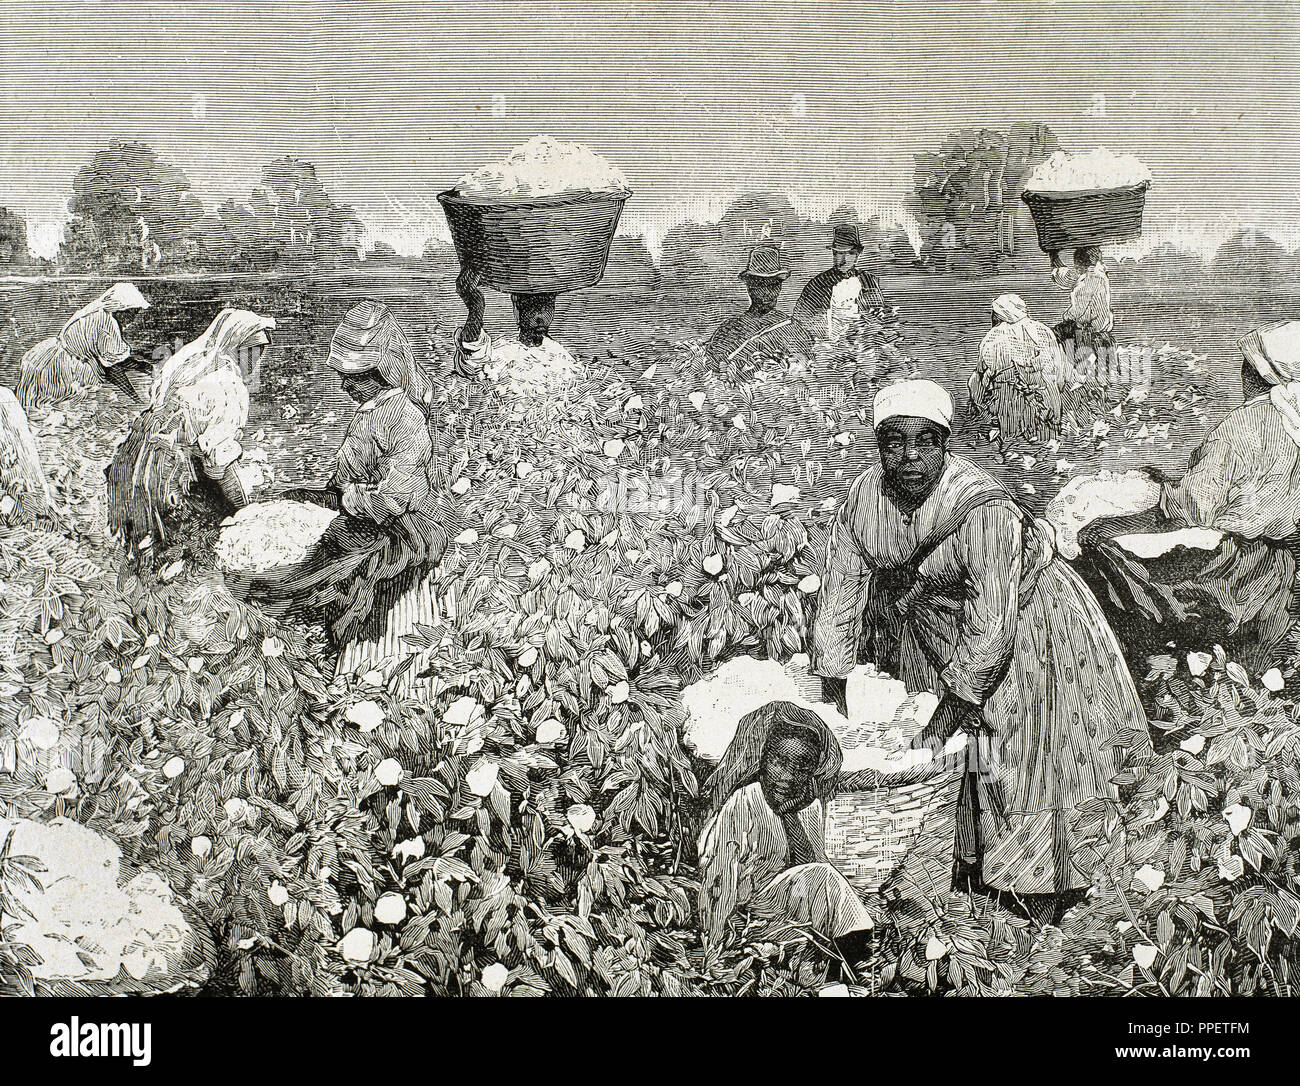 United States. Picking cotton. Engraving 1878 Stock Photo ...